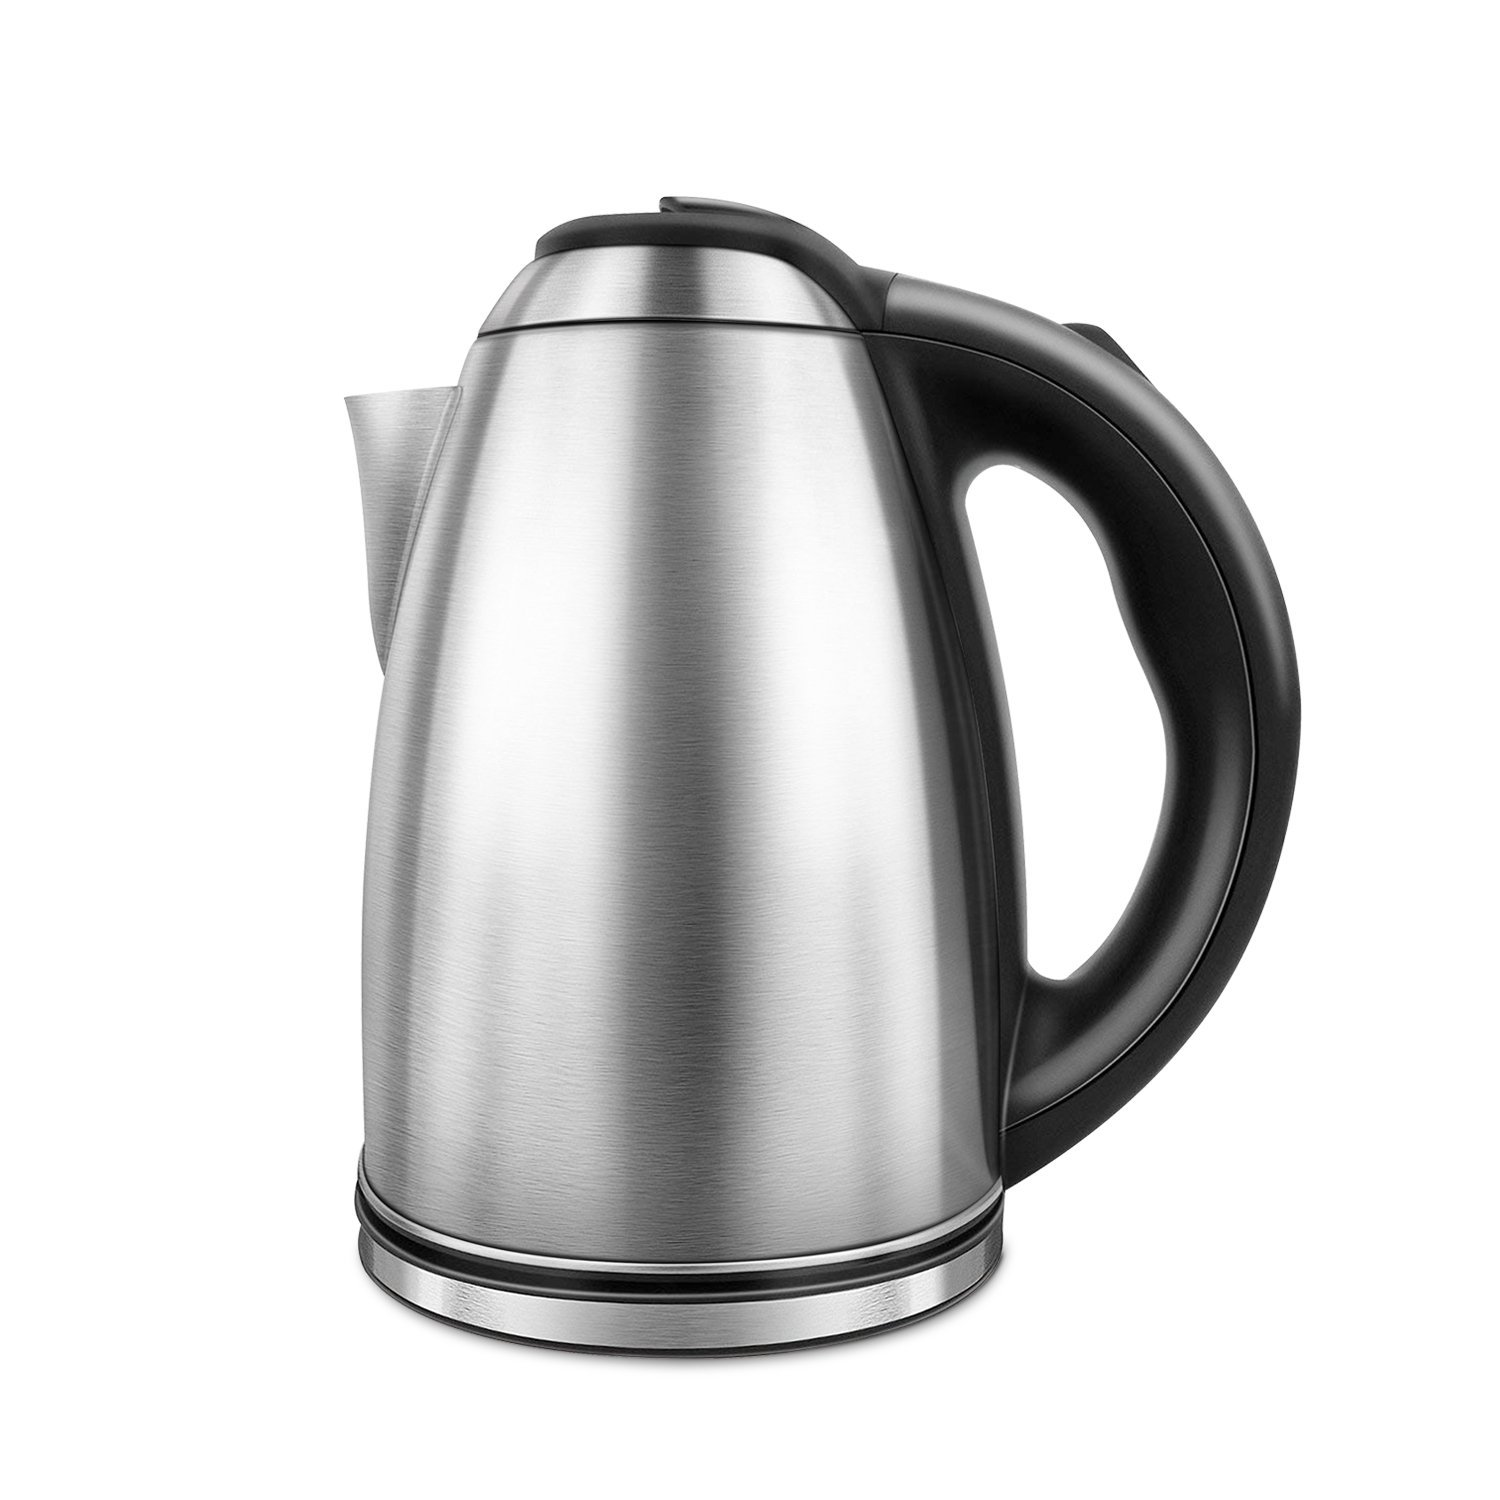 Electric Kettle, Hot Water Kettle 1.8 Liter, Stainless Steel Cordless Tea Kettle 1200W with Auto Shut-off, Boil-Dry Protection, Electric Tea Pot Perfect For Brewing Teas, Coffee By Túasia